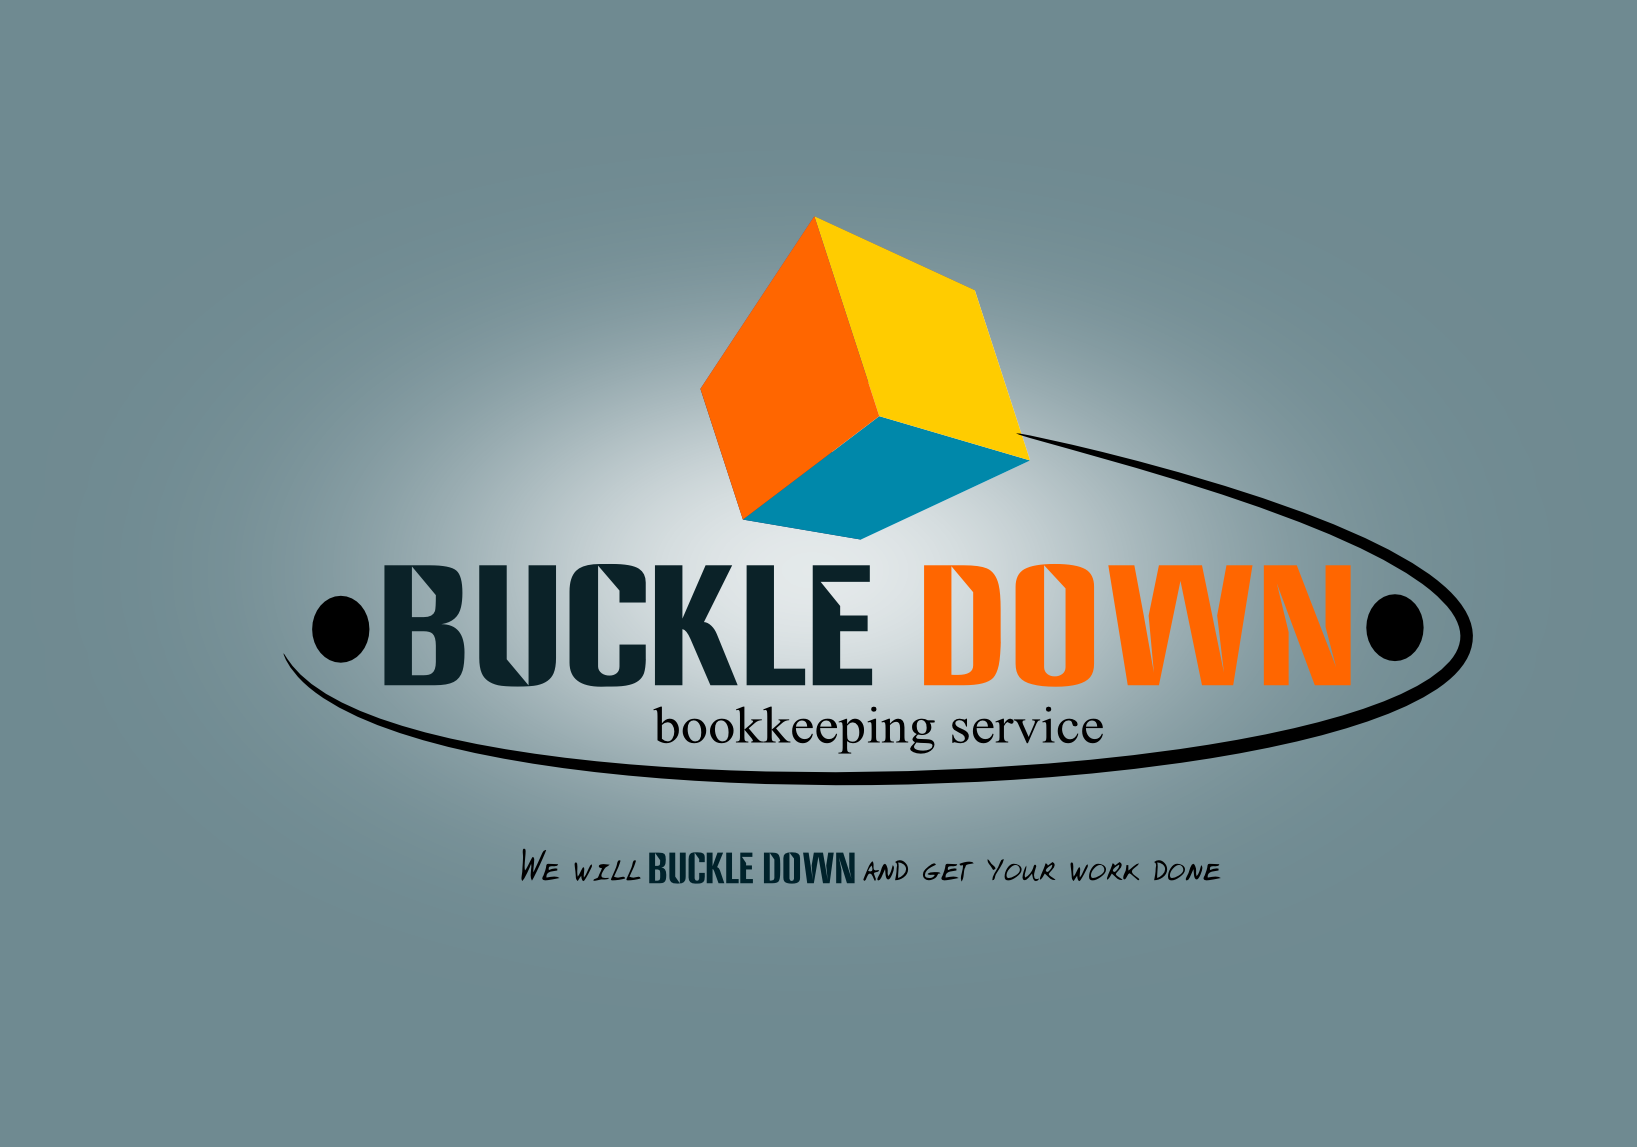 Logo Design by Joseph calunsag Cagaanan - Entry No. 67 in the Logo Design Contest Unique Logo Design Wanted for Buckle Down Bookkeeping Service.